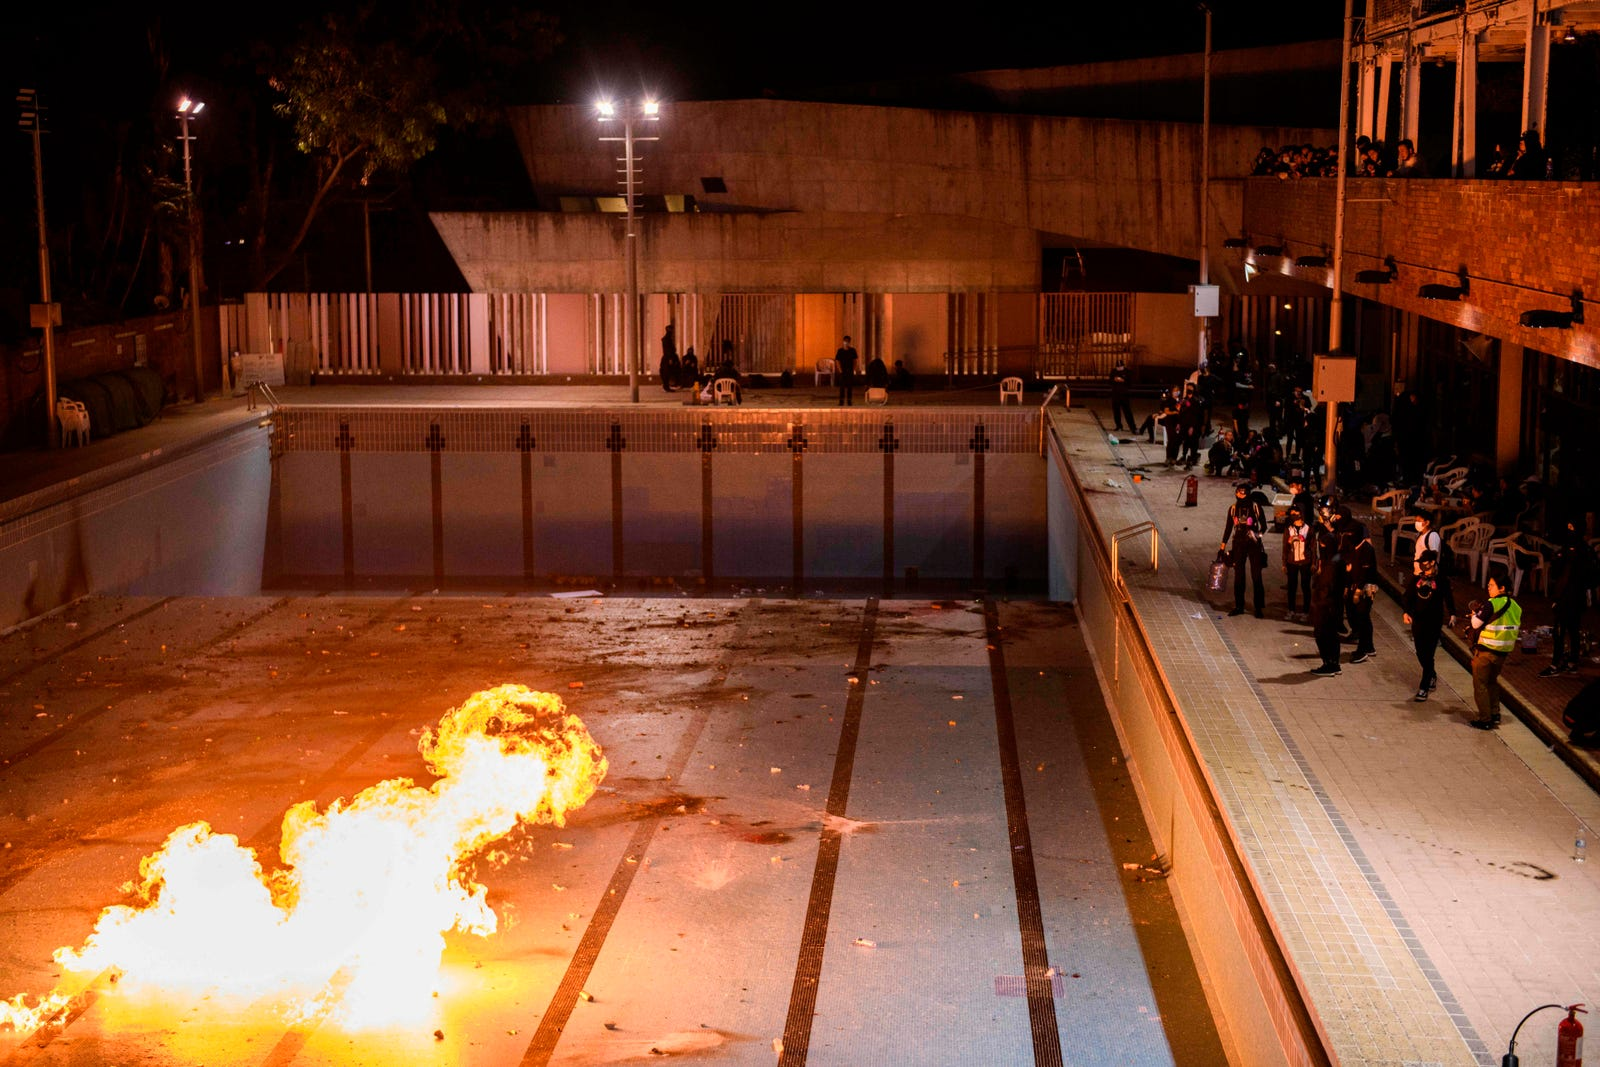 In this picture taken on November 14, 2019, protesters practice throwing molotov cocktails into an emptied 50-meter Olympic-size swimming pool at the Hong Kong Polytechnic University in Hung Hom, Hong Kong.